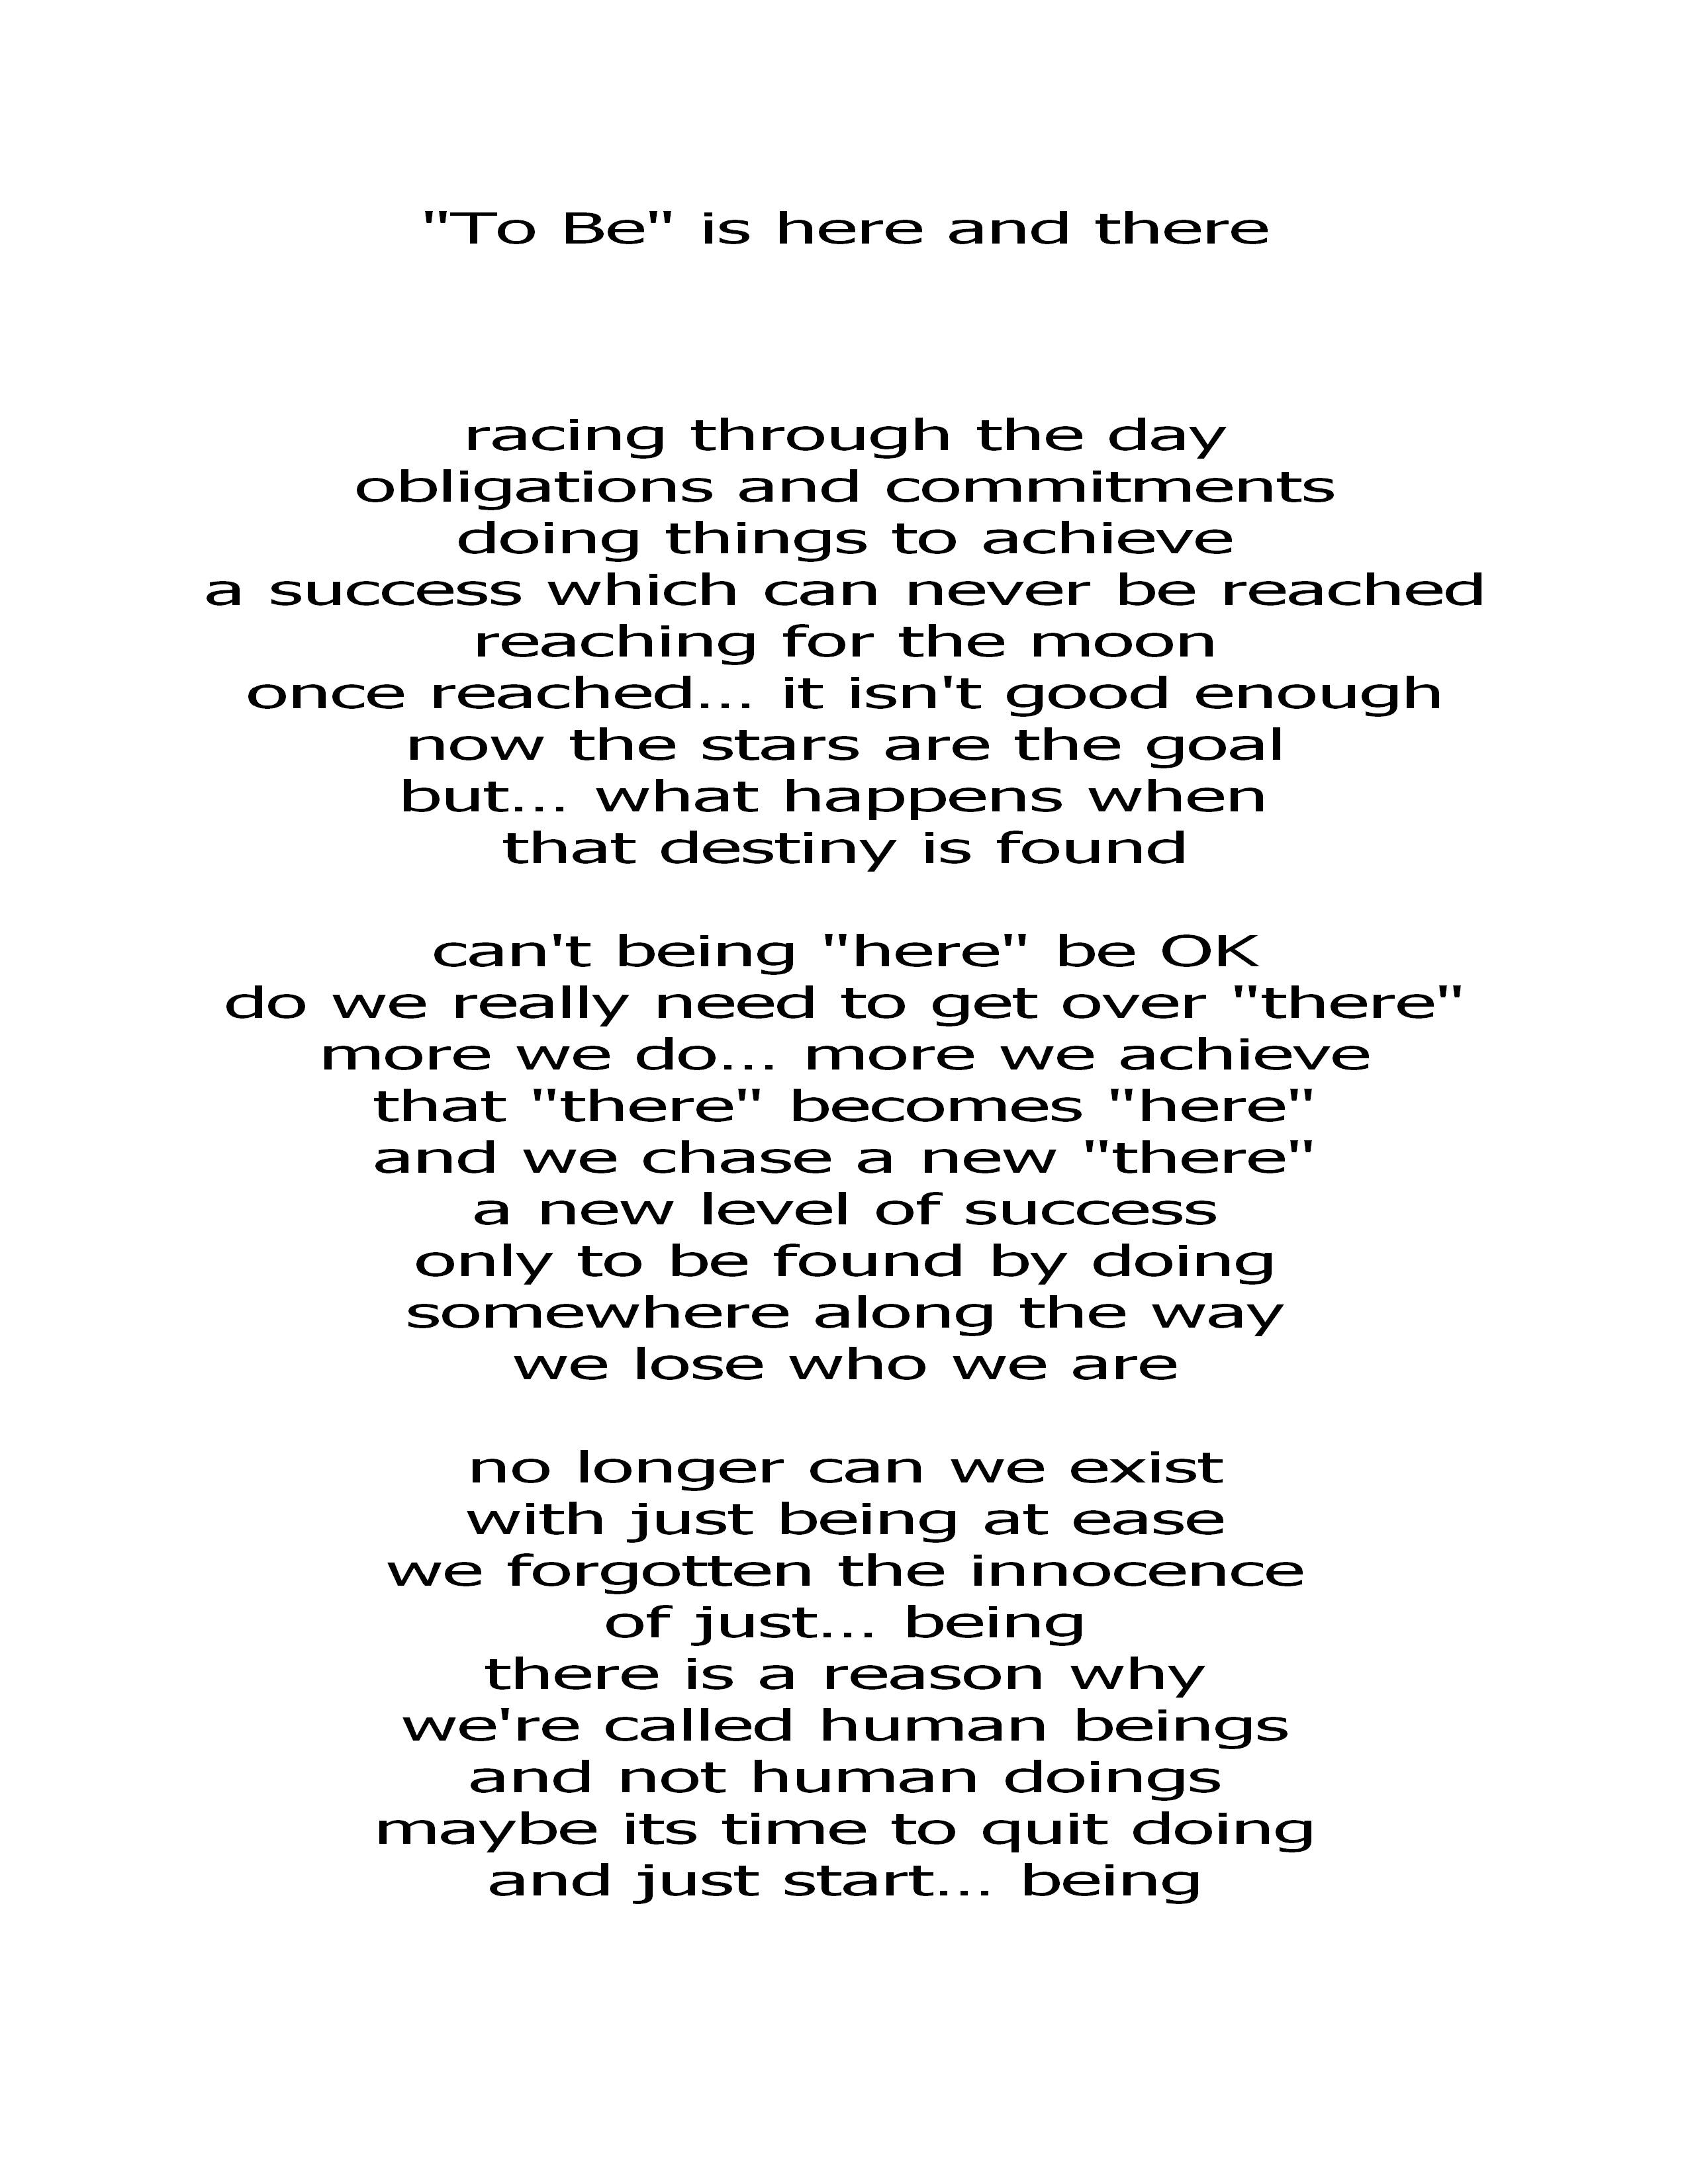 the discovery vs this poem This is to say that my favorite poems—and, i'd argue, most great poems—suggest minds at work on unsolvable problems the joy of reading these poems isn't the discovery of a solution to our great anxieties and dilemmas, though they may provide comfort.